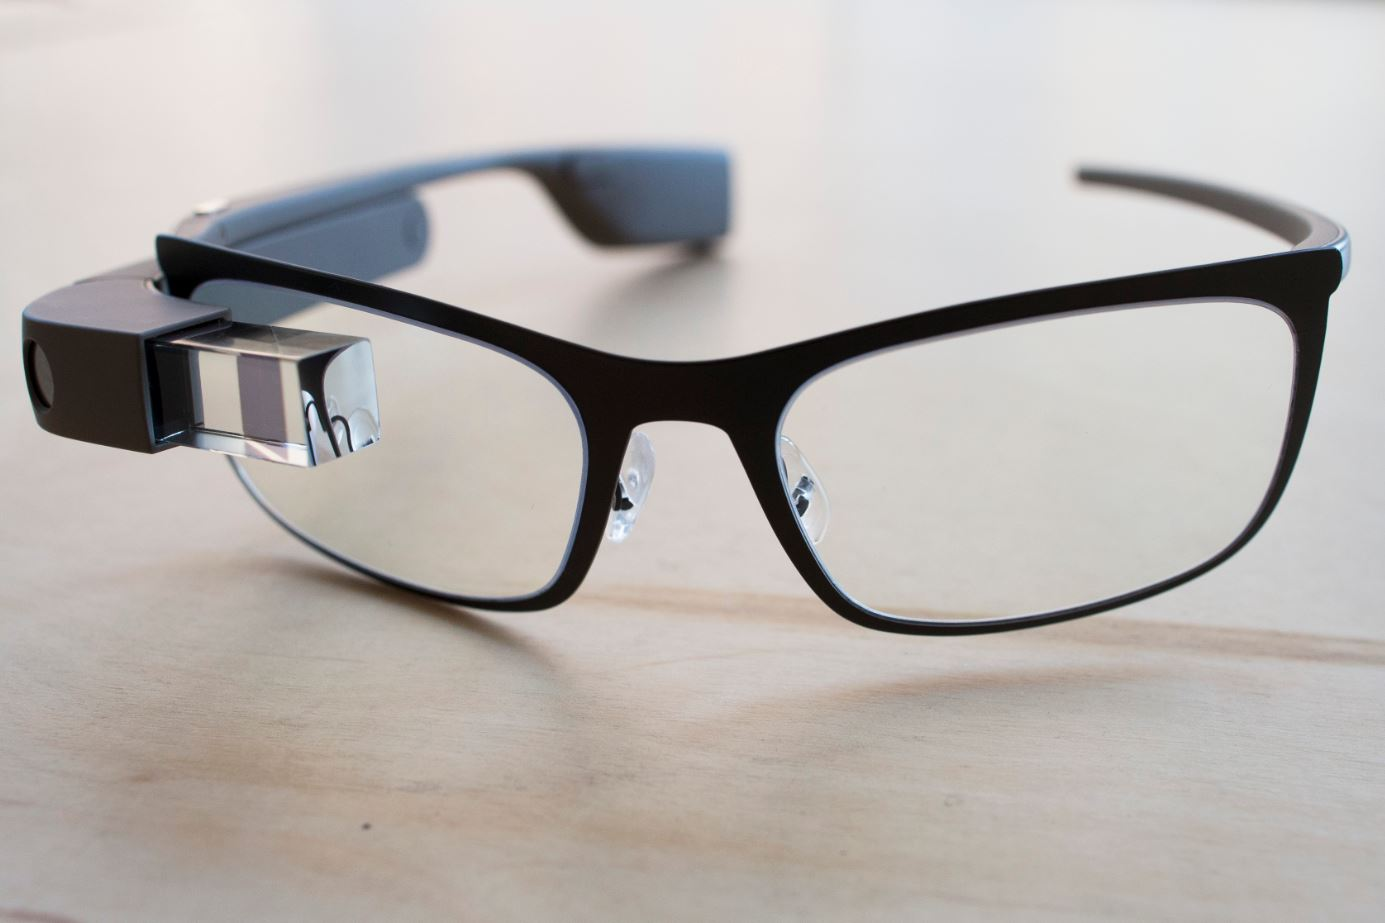 """The new Google Glass """"Bold"""" prescription frames in """"shale"""" color rests on a table at the Google Glass Basecamp space at Chelsea Market, Friday, Jan. 24, 2014, in New York. (AP Photo/John Minchillo)"""